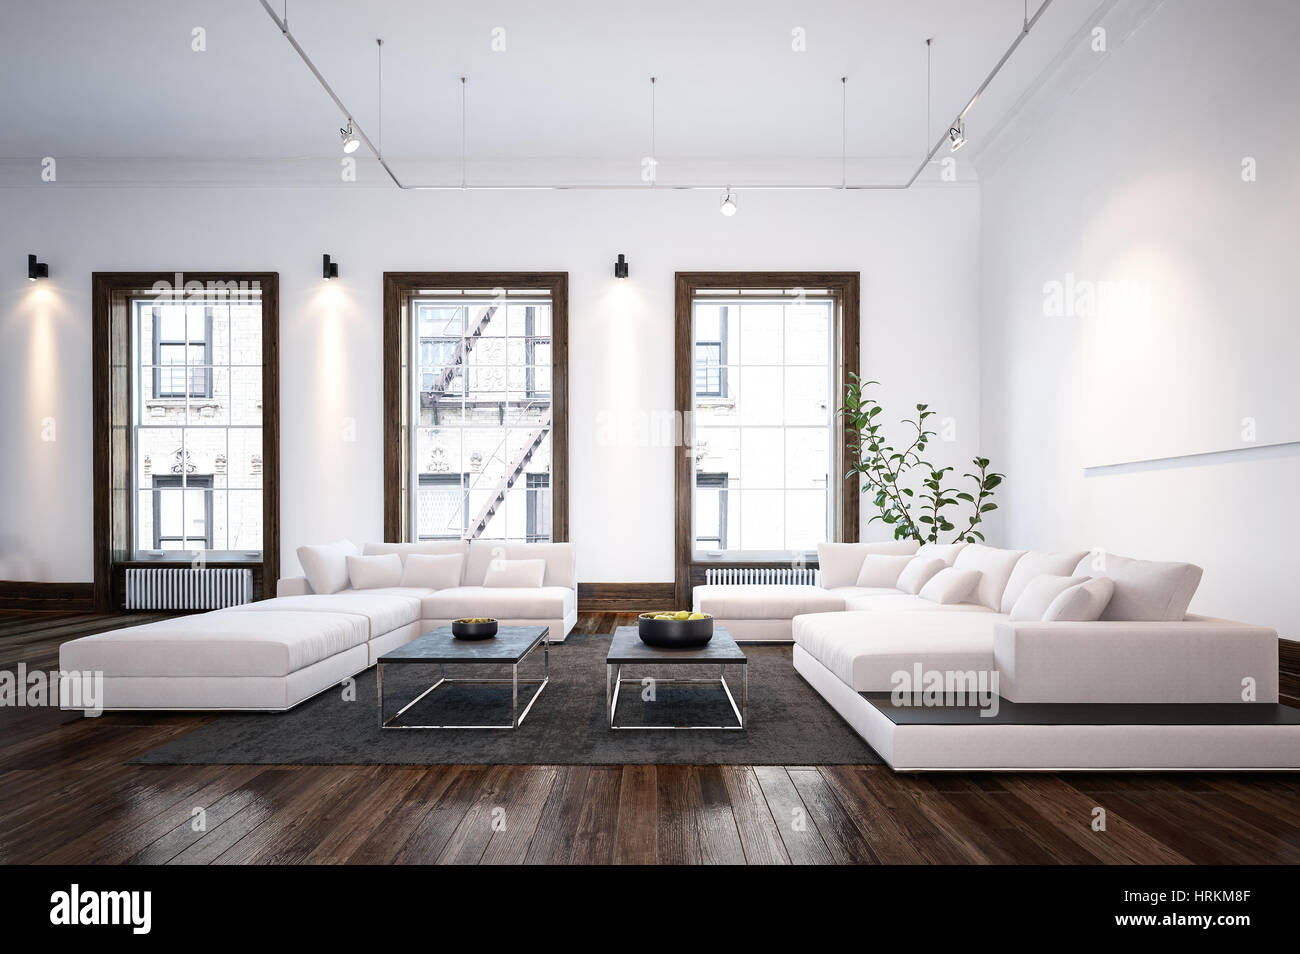 Modern minimalist designer living room interior with stylish large sofas and tables on a wooden parquet floor in front of bright windows 3d rendering